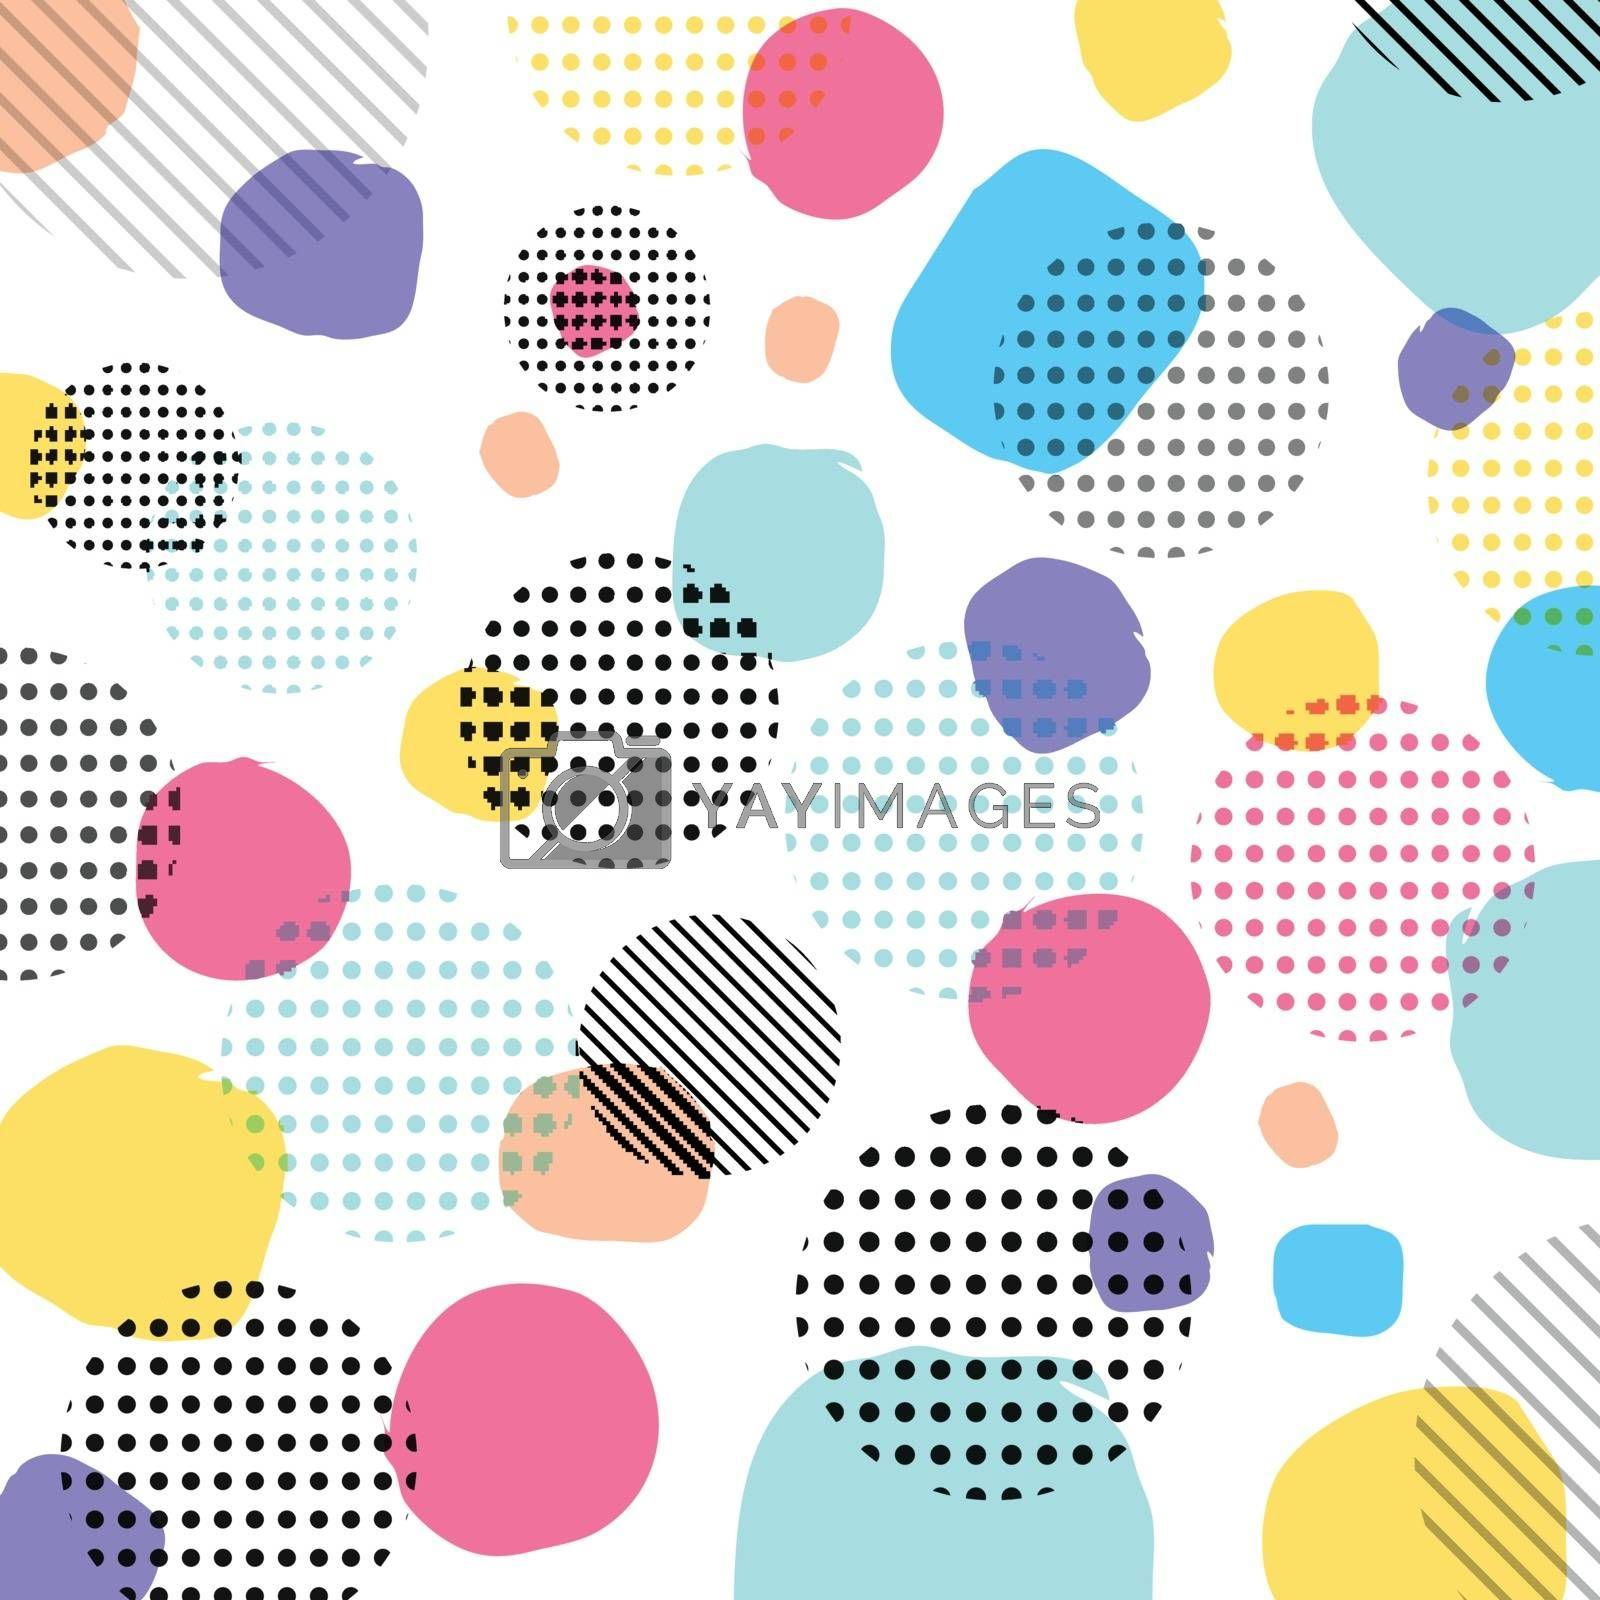 Abstract modern pastels color, black dots pattern with lines diagonally on white background. Vector illustration